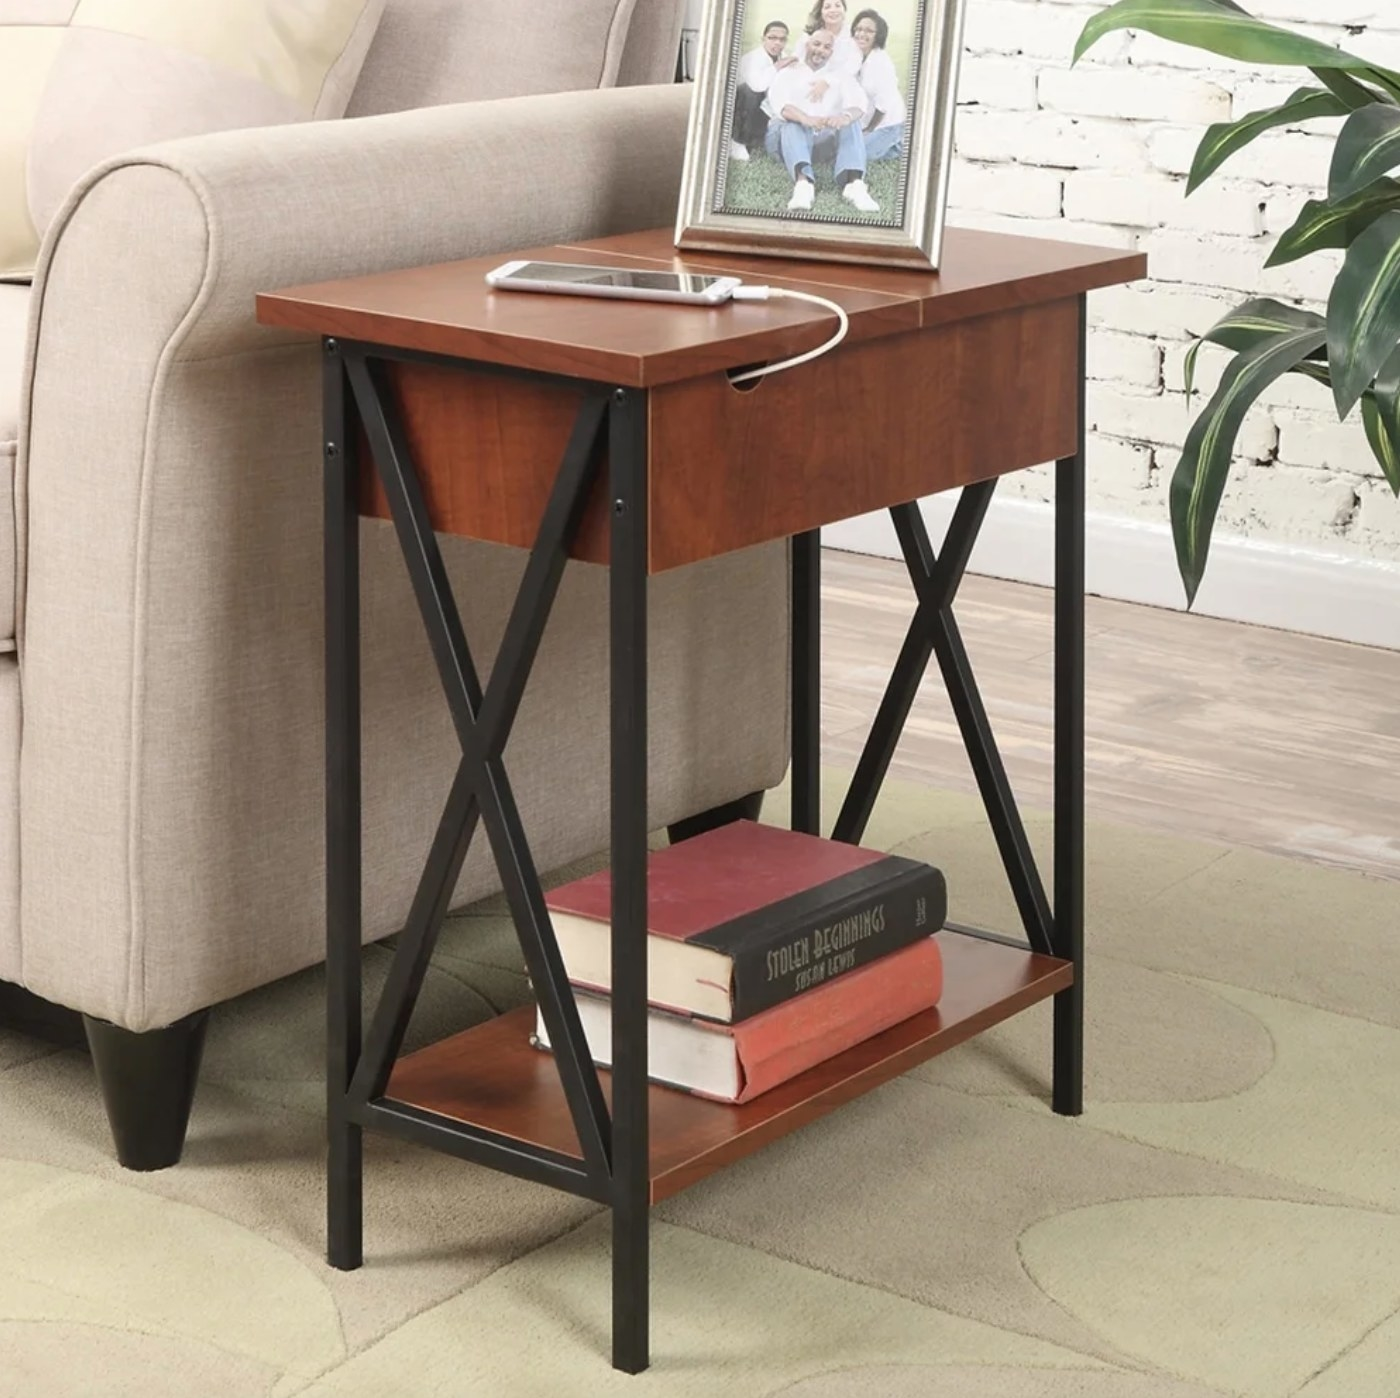 The flip-top side table in cherry